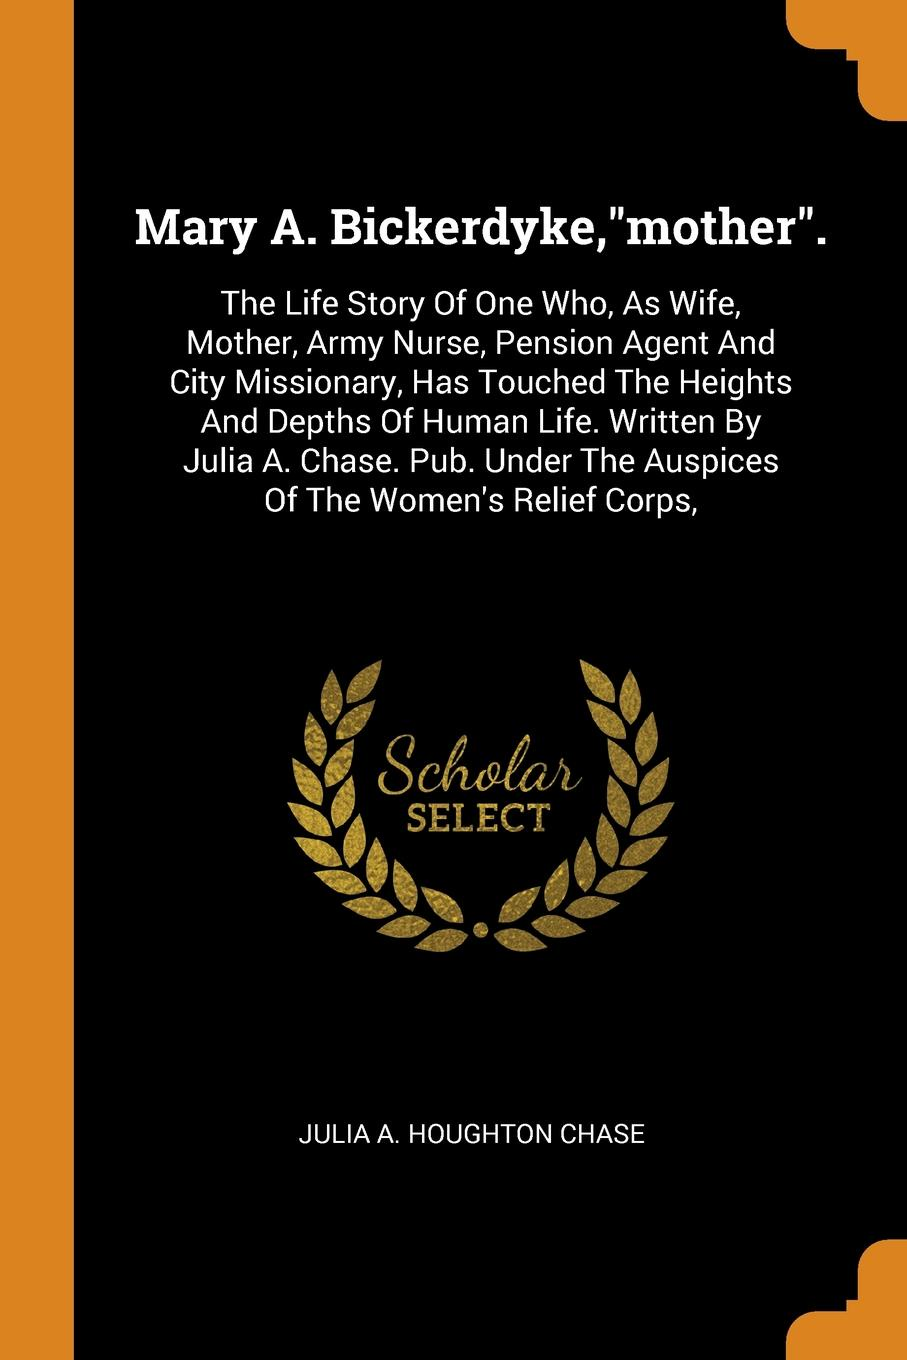 """Mary A. Bickerdyke,""""mother"""". The Life Story Of One Who, As Wife, Mother, Army Nurse, Pension Agent And City Missionary, Has Touched The Heights And Depths Of Human Life. Written By Julia A. Chase. Pub. Under The Auspices Of The Women.s Relief Corps,"""